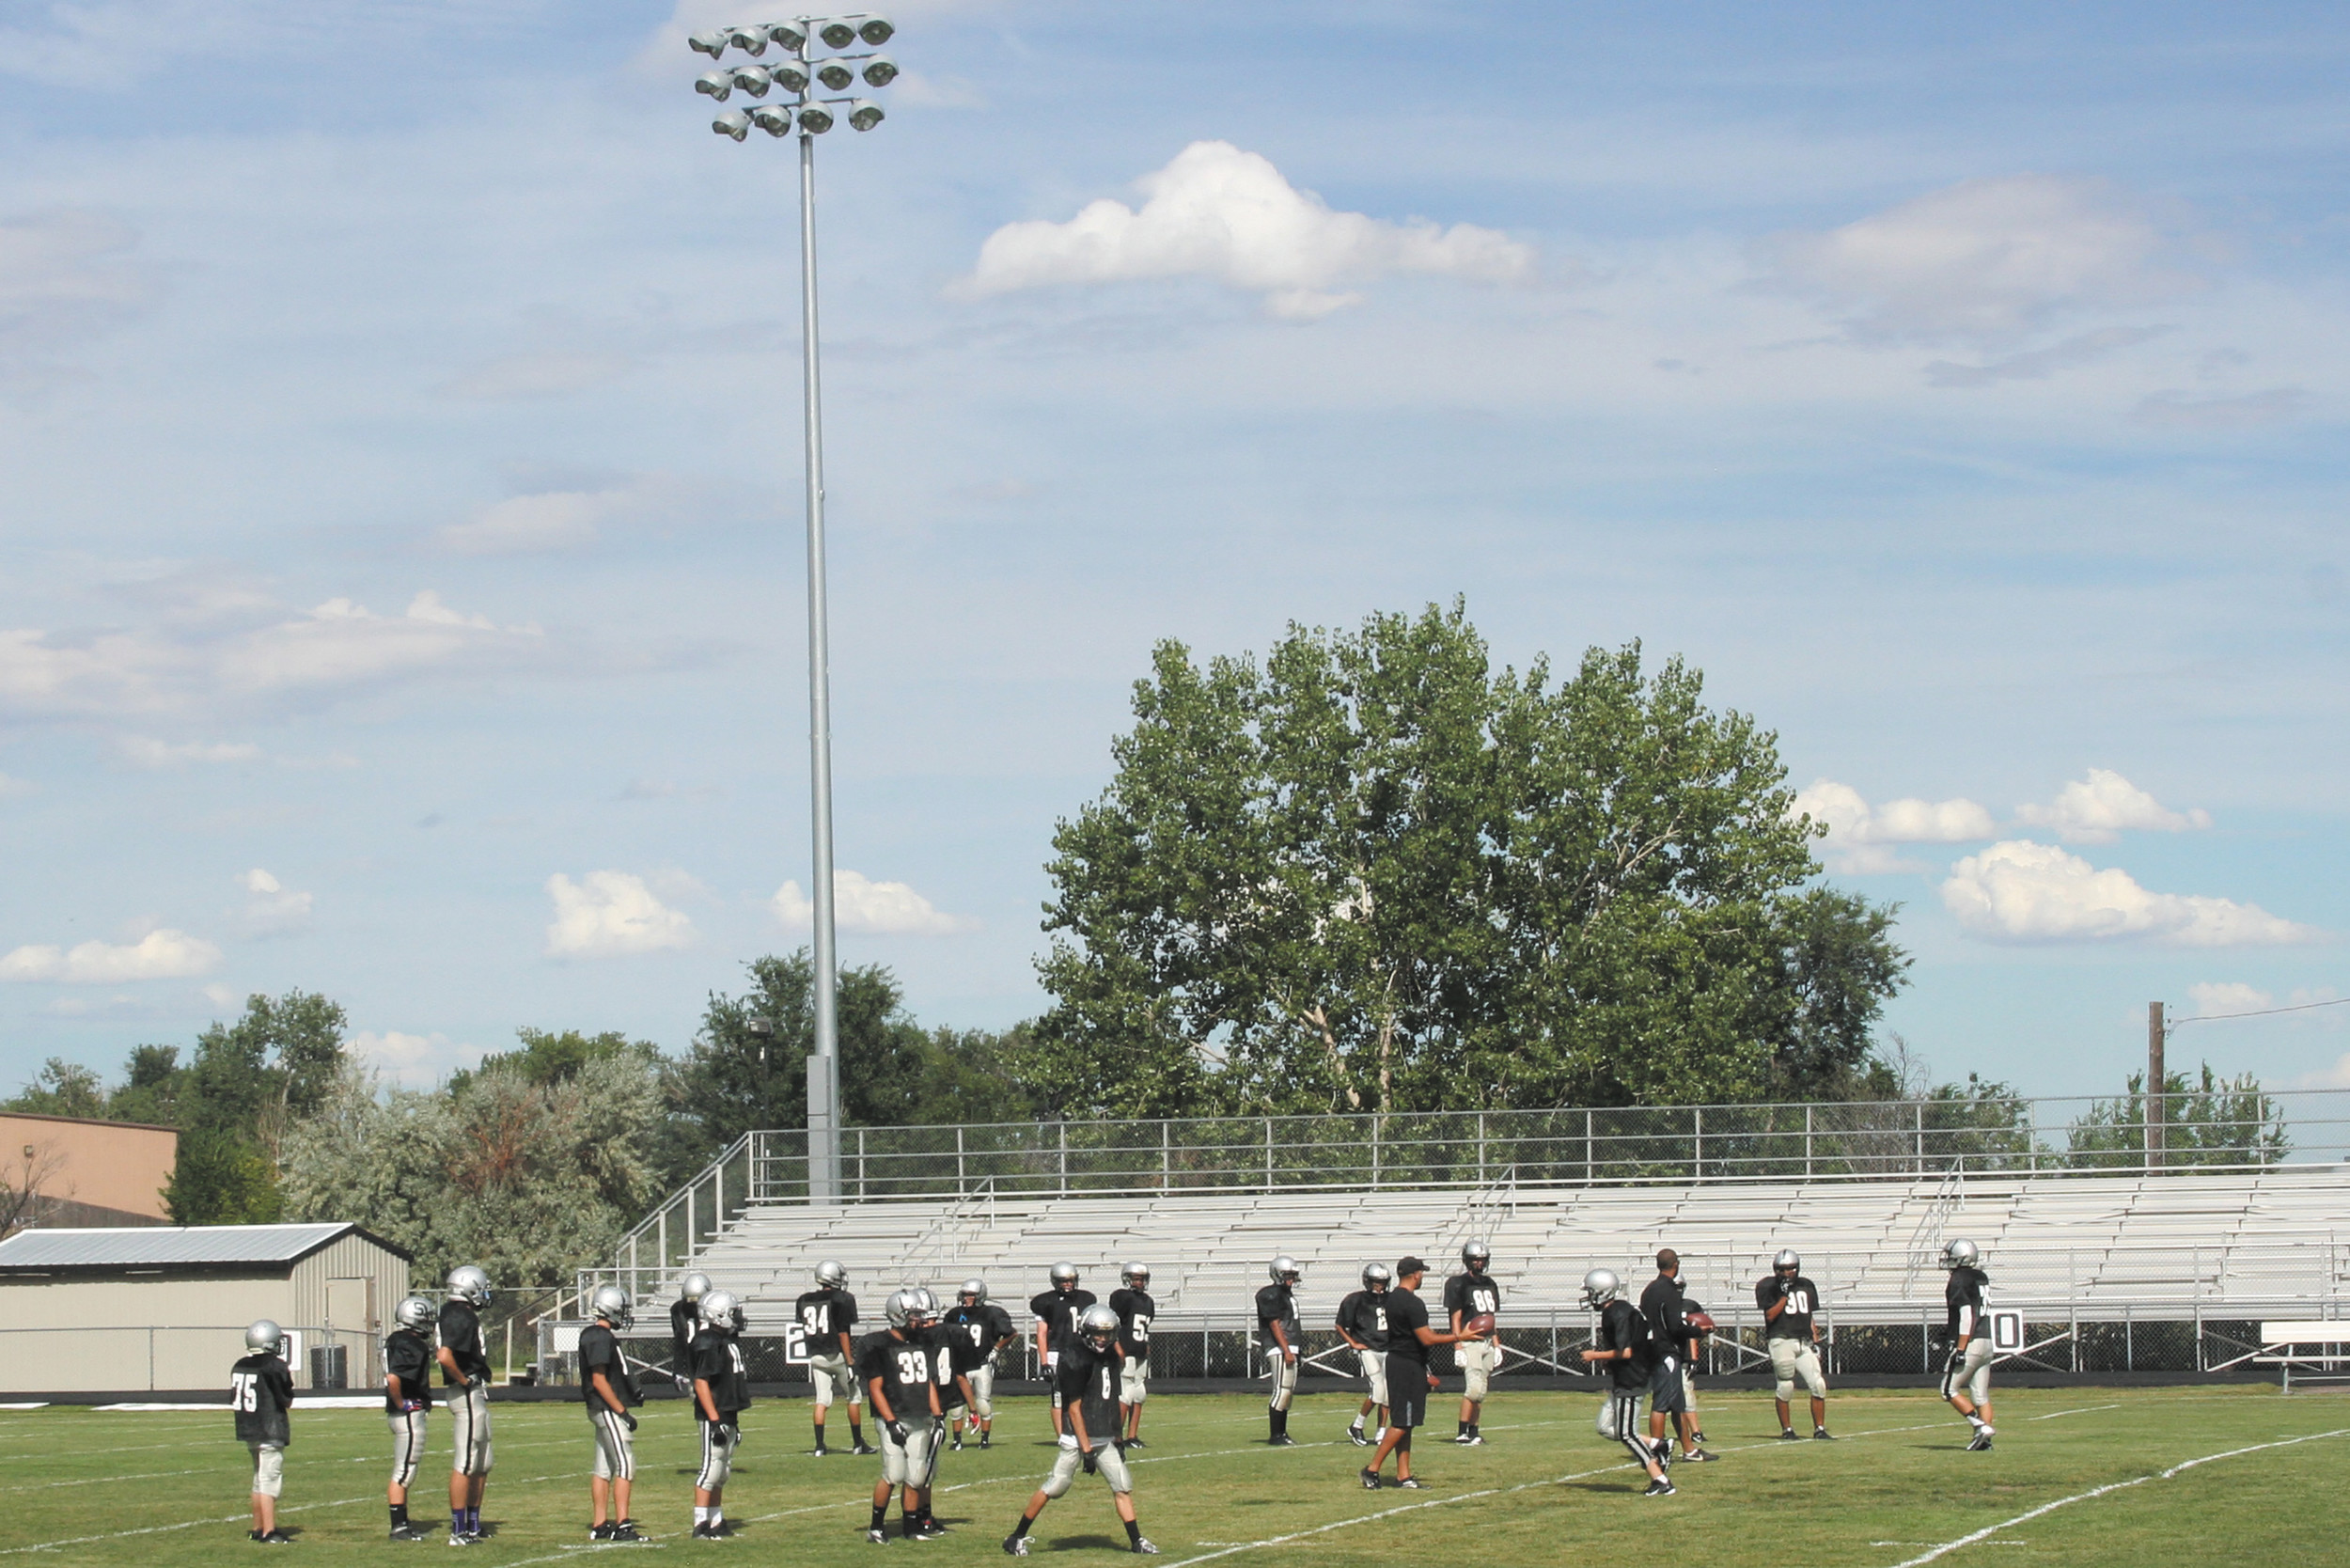 The Skyview Wolverines practice on the field at DiTirro Stadium Aug. 21. For the first time, Mapleton will be able to host evening games thanks to the newly installed lights.